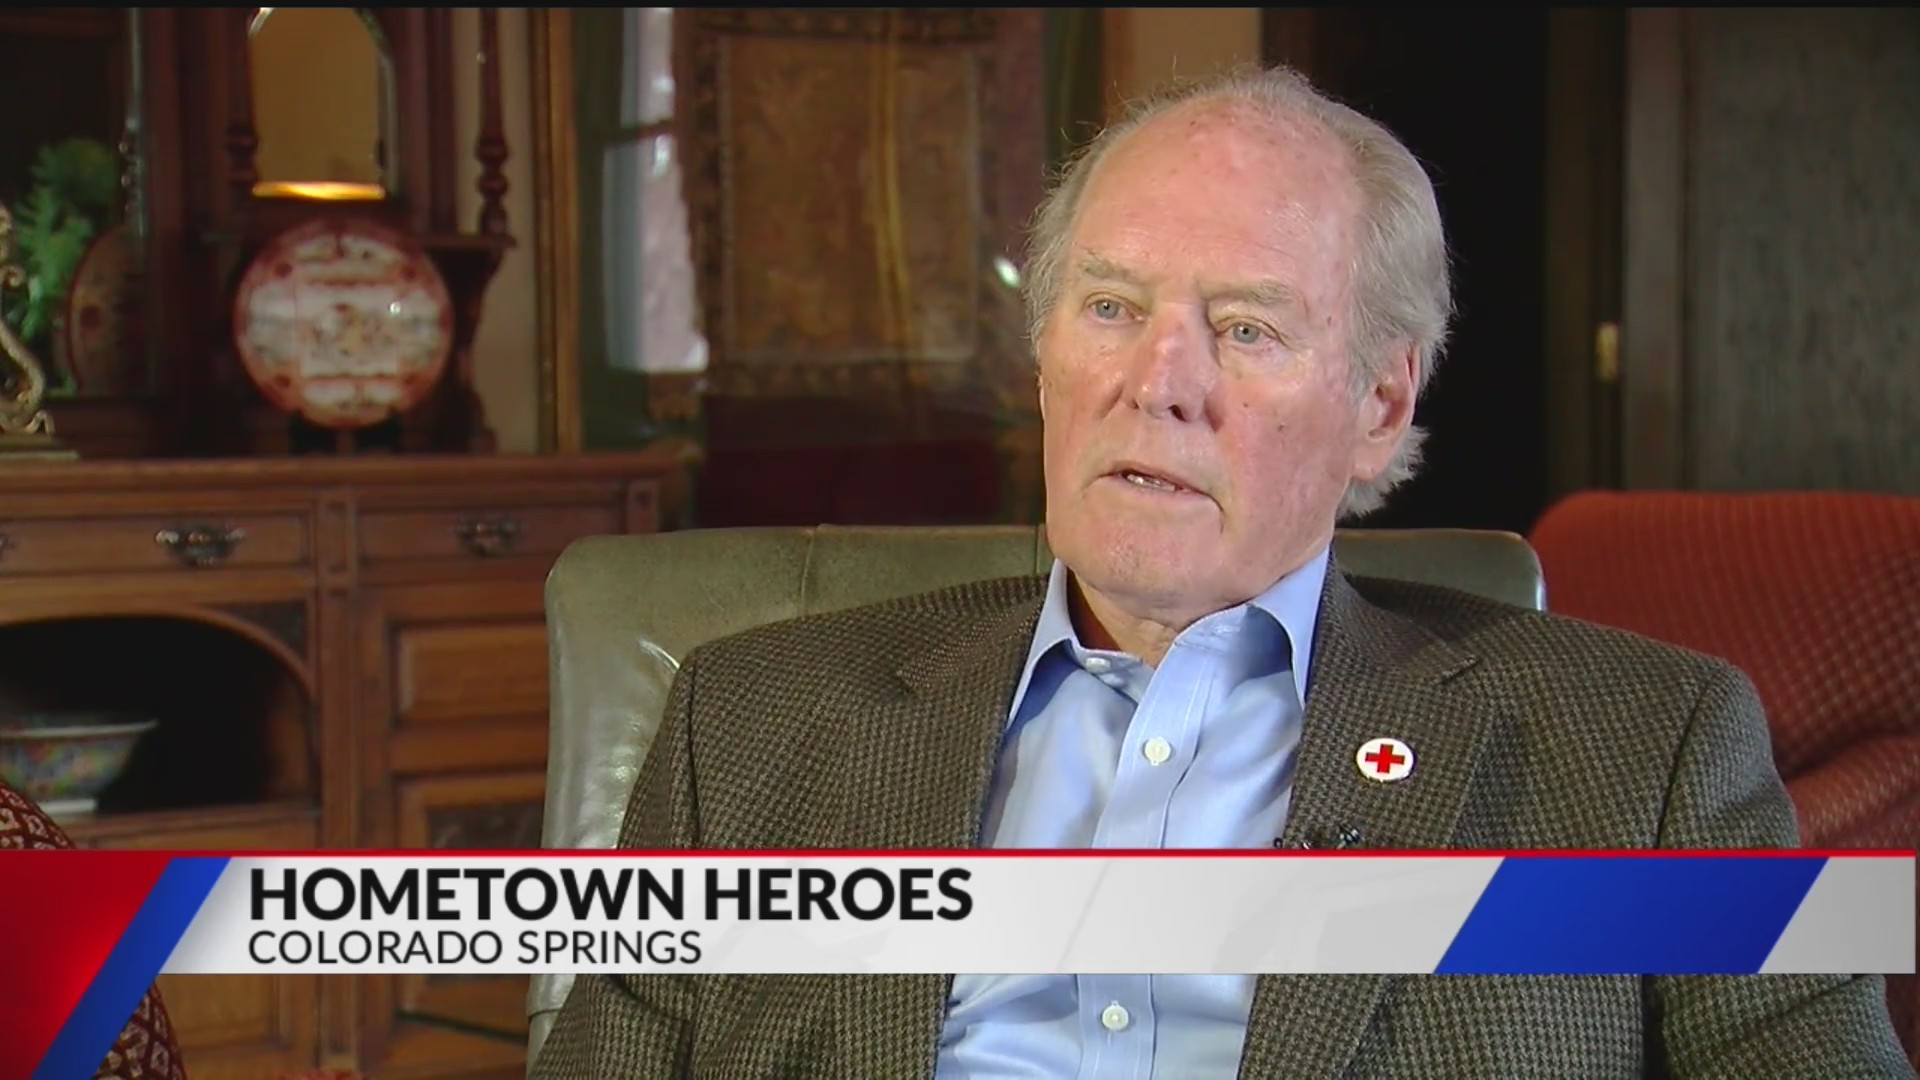 Bill Tutt recognized with Hometown Heroes Humanitarian Award